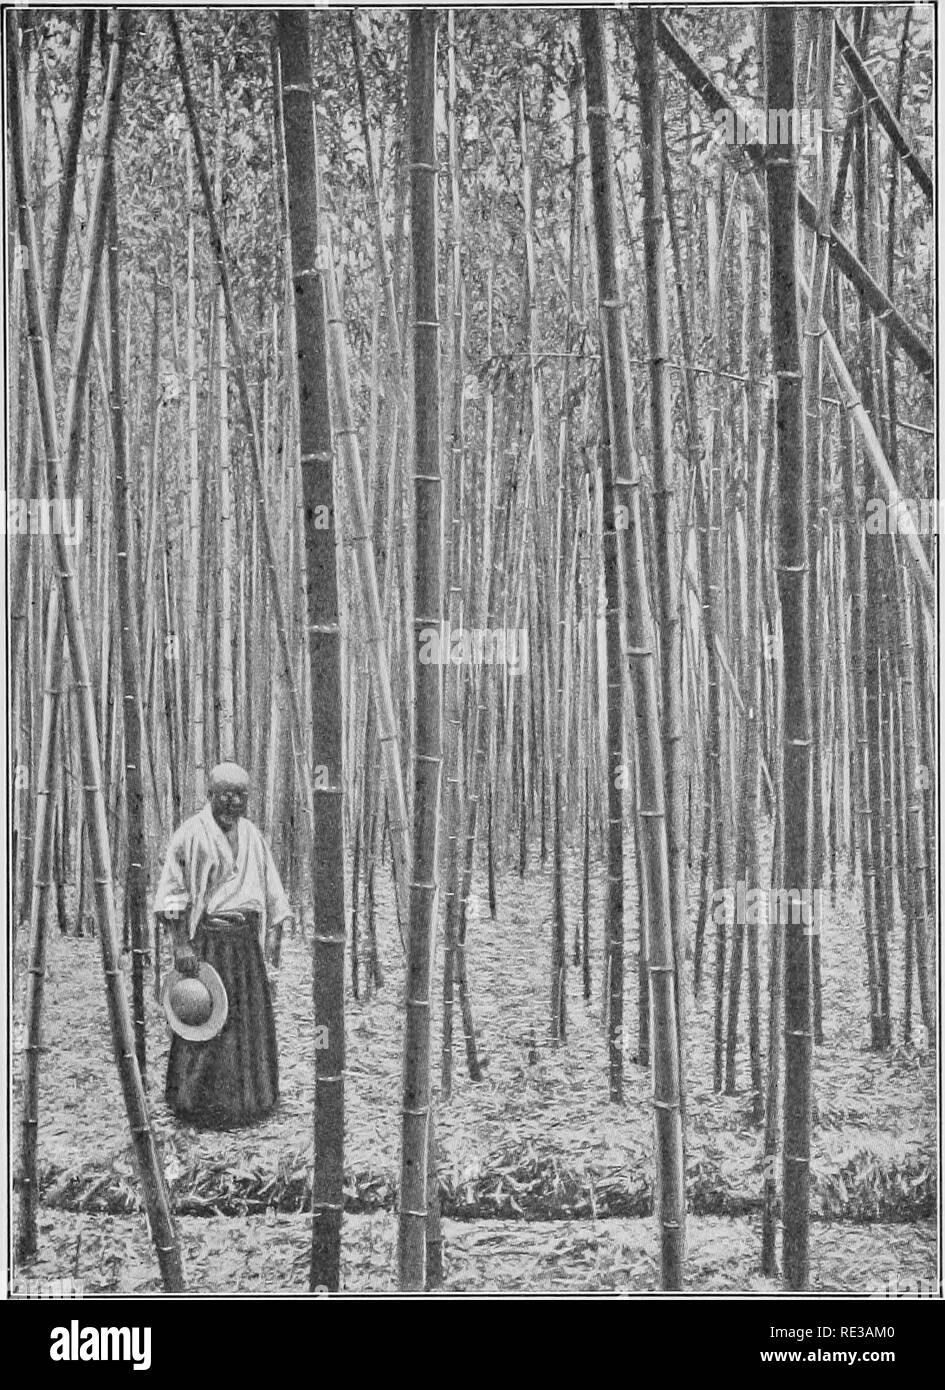 . A practical course in botany, with especial reference to its bearings on agriculture, economics, and sanitation. Botany. THE STEM 99. Plate 4. — Forest of bamboo, showing the tall, straight, branchless habit of monocotyl stems.. Please note that these images are extracted from scanned page images that may have been digitally enhanced for readability - coloration and appearance of these illustrations may not perfectly resemble the original work.. Andrews, Eliza Frances, b. 1840; Lloyd, Francis Ernest, 1868-1947. ed. New York, Cincinnati [etc. ] American book company - Stock Image